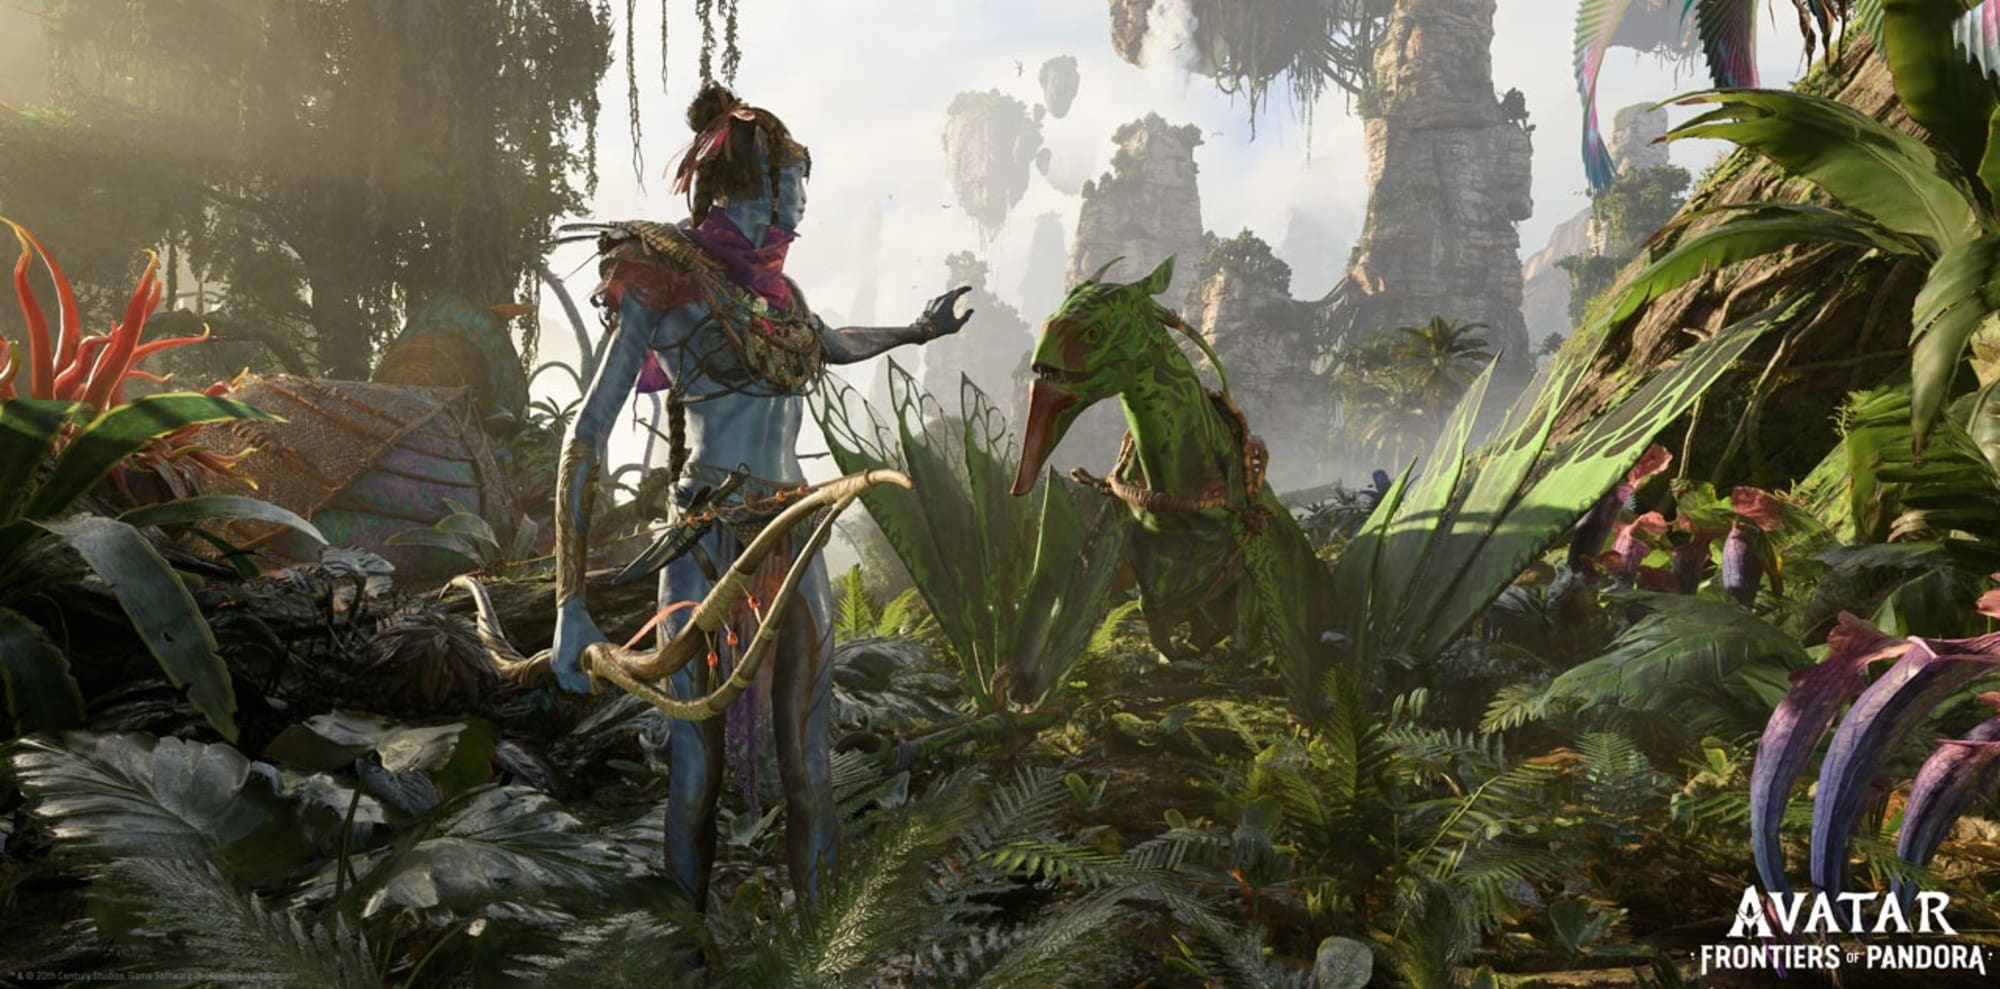 Ubisoft's Avatar game is real and actually looks good